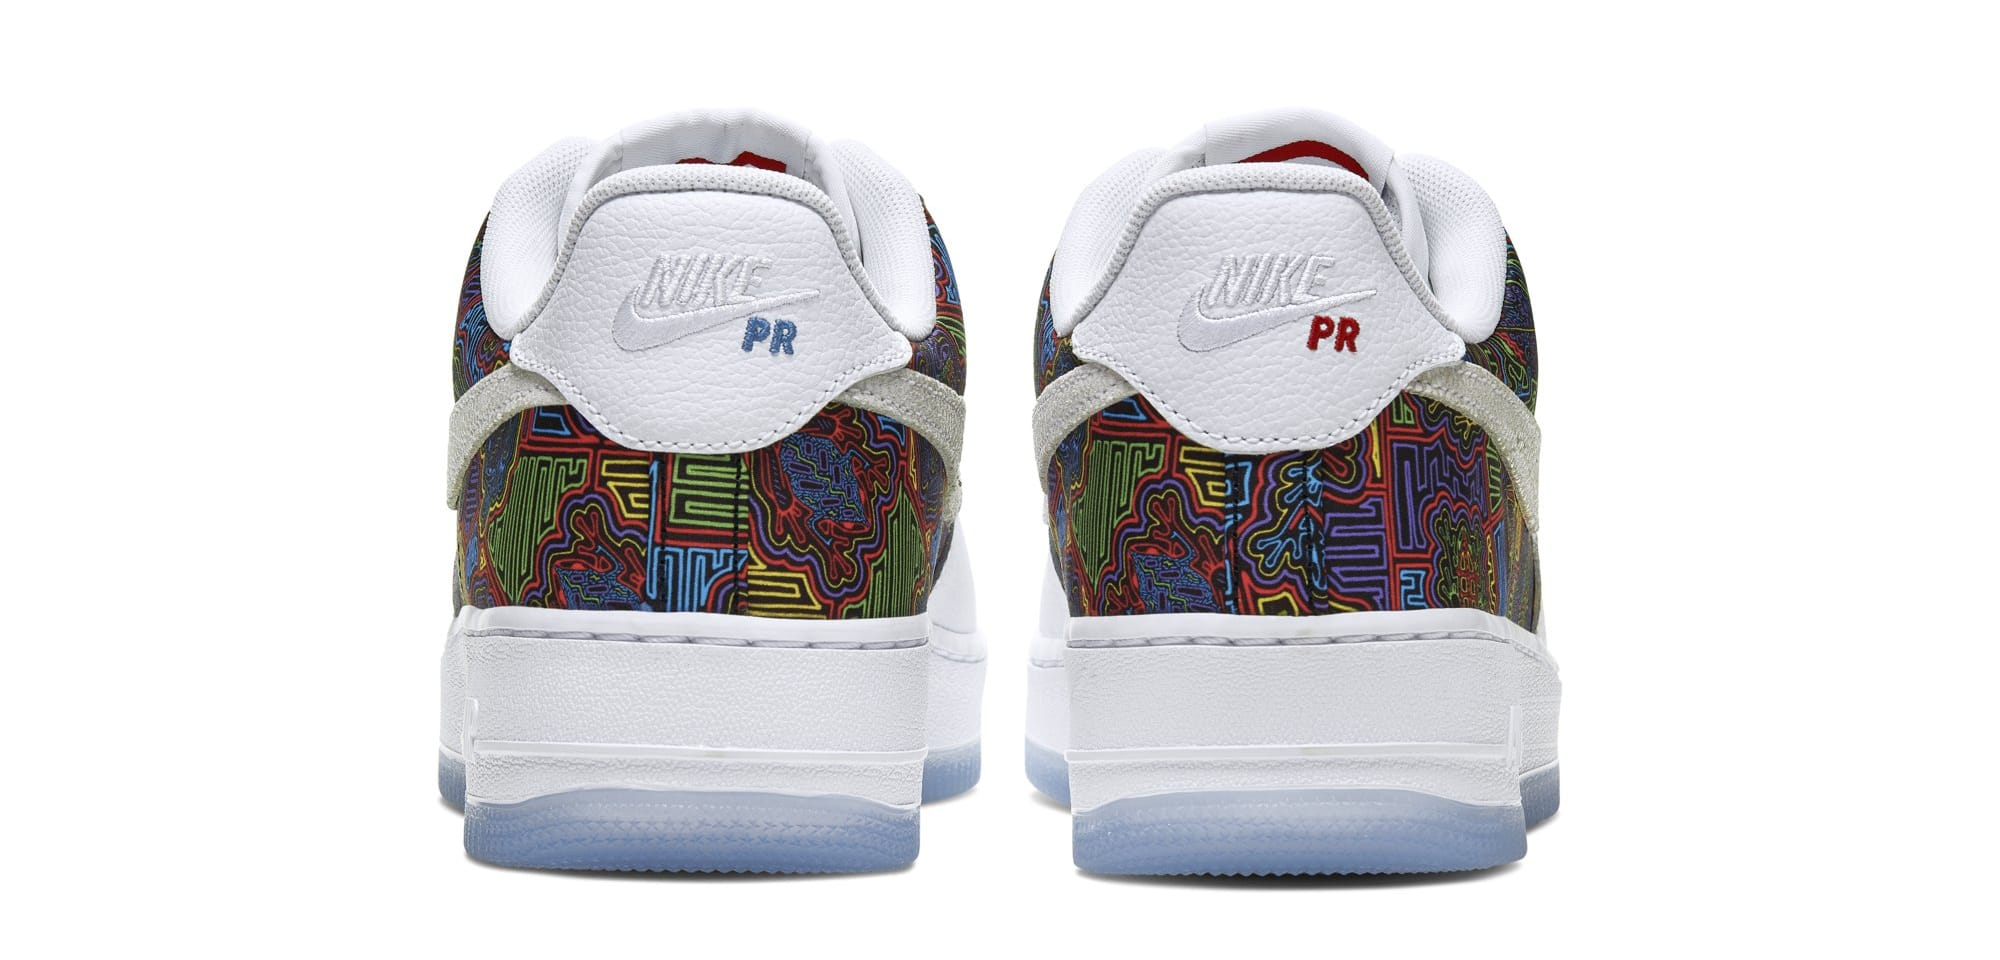 Icy Blue Grind Nike Air Force 1 Low 'puerto Rico' 2019 Cj1620-100 Release